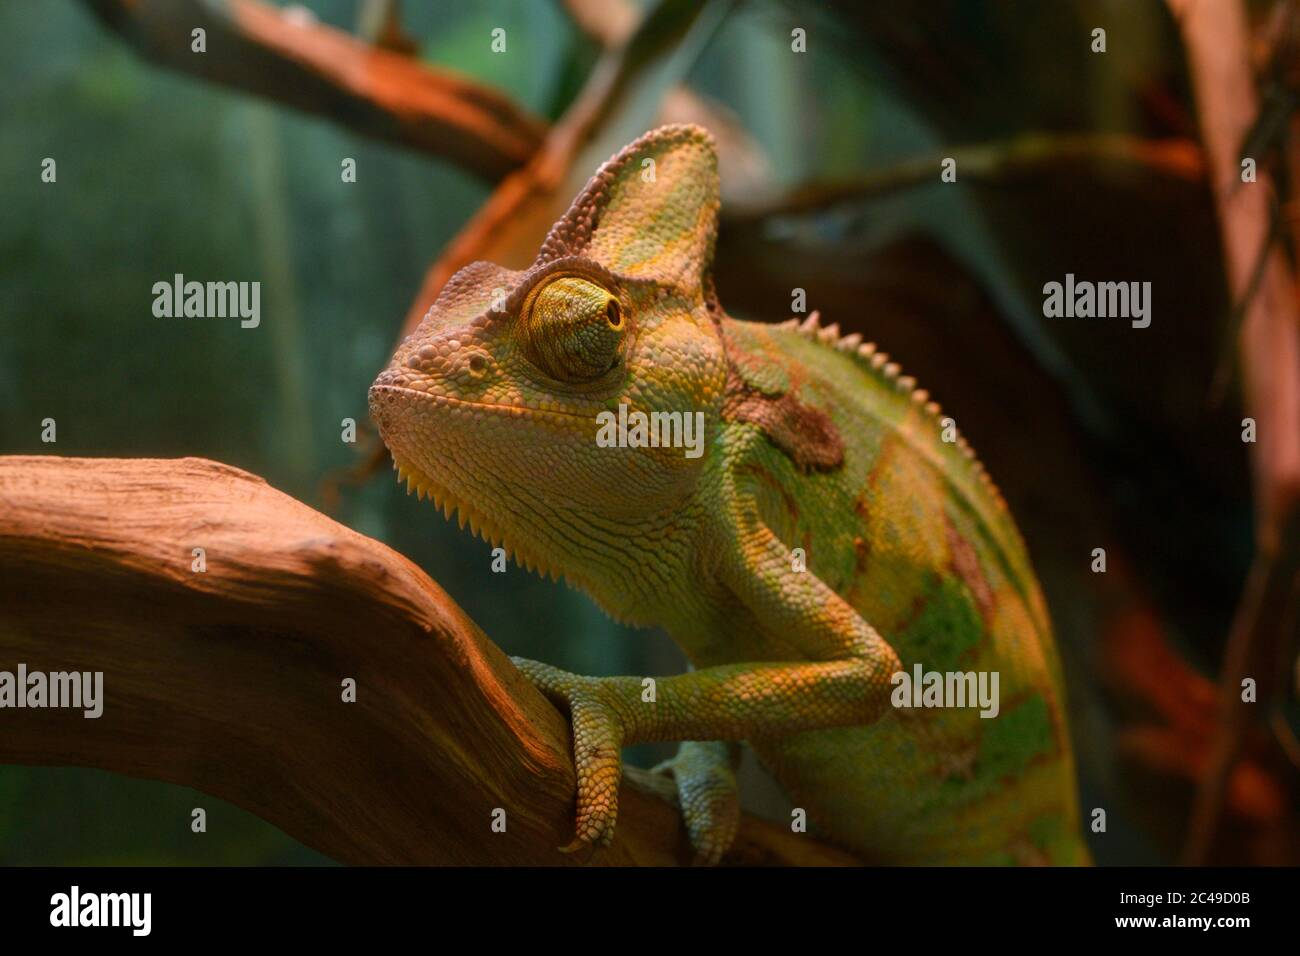 Veiled Chameleon Chamaeleo Calyptratus Sitting On A Branch Of A Tree In A Terrarium Of A Zoo Stock Photo Alamy